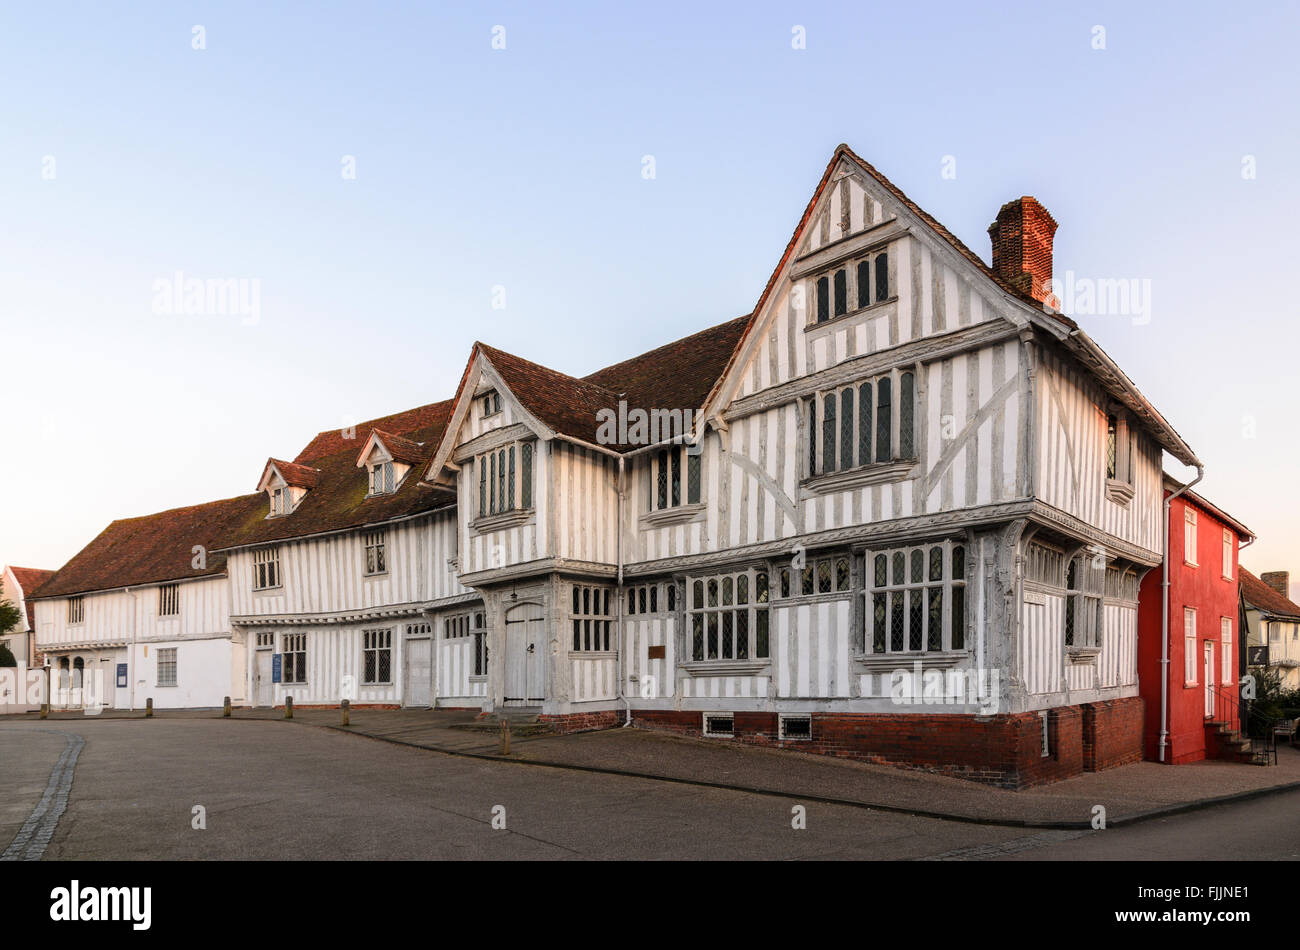 Guildhall of Corpus Christi, Lavenham, Suffolk, England, UK.Stock Photo